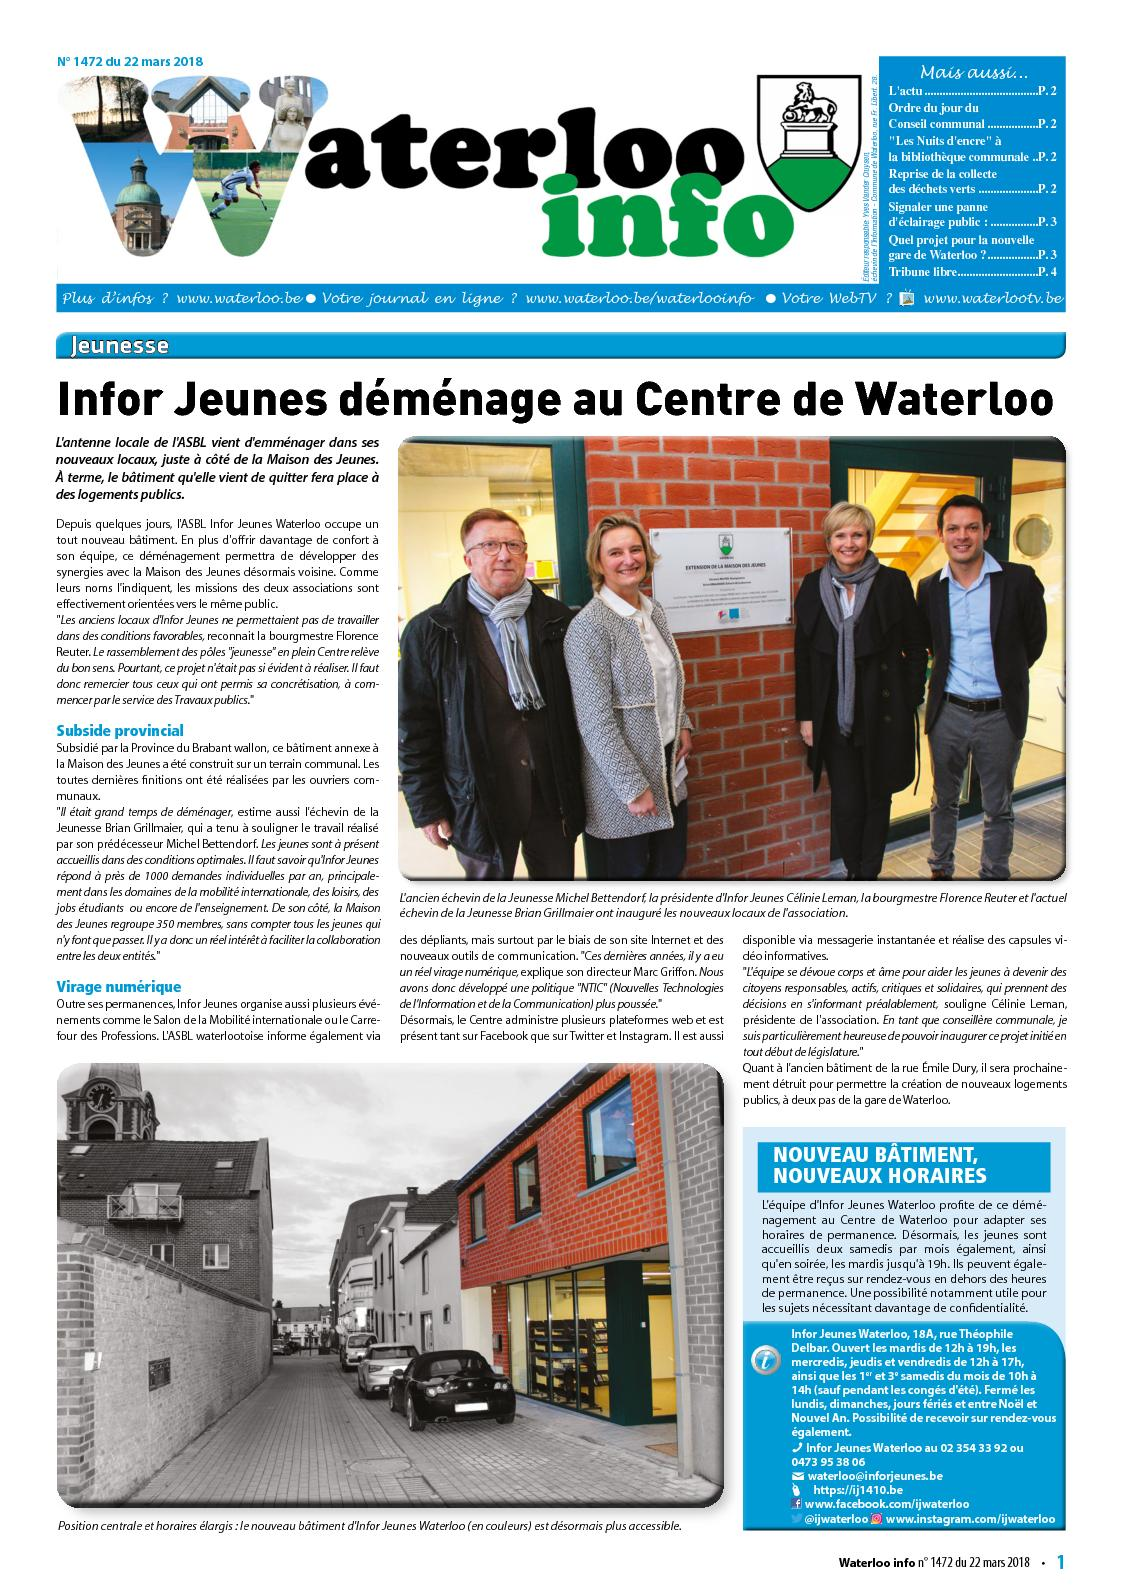 Waterloo Info n°1472 du 22 mars 2018